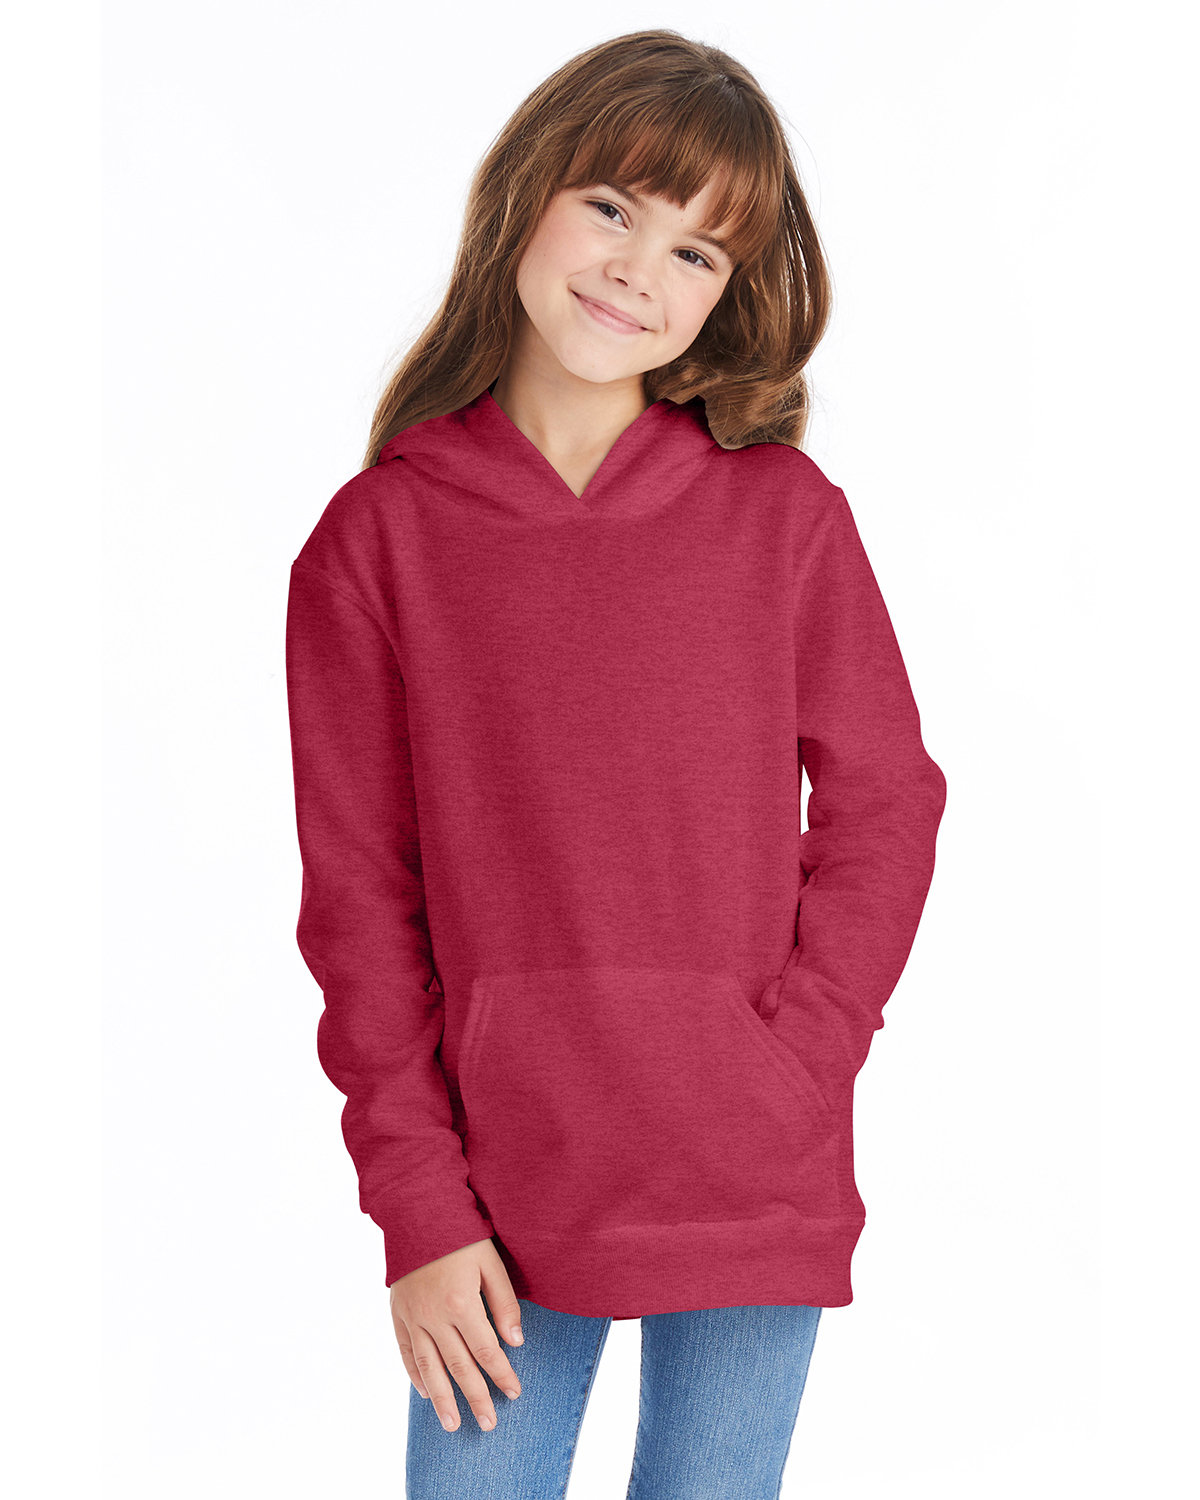 Hanes Youth EcoSmart® 50/50 Pullover Hooded Sweatshirt HEATHER RED